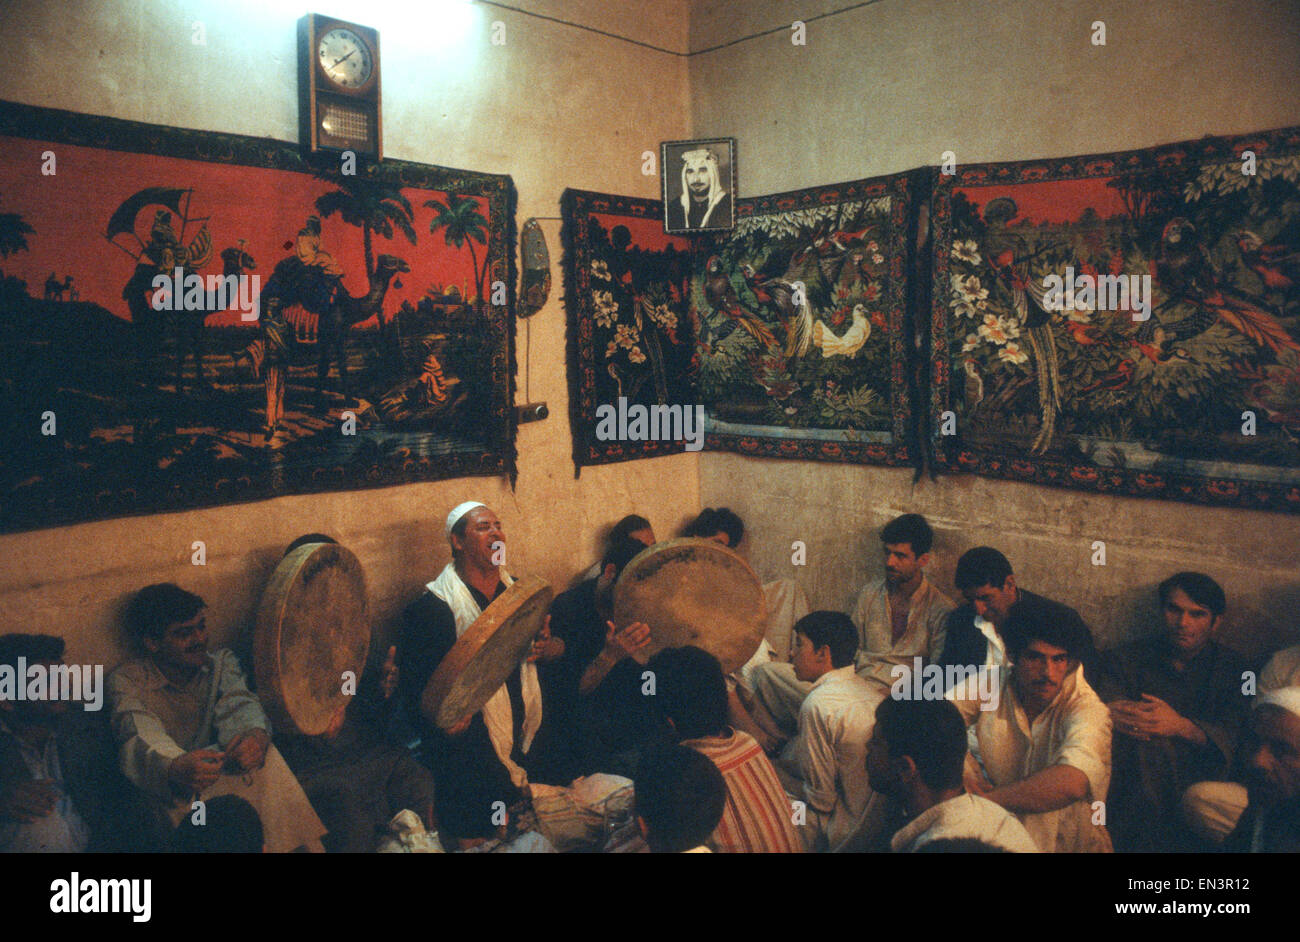 Sufi ceremony in private house in Baghdad Iraq in late 1970s - Stock Image